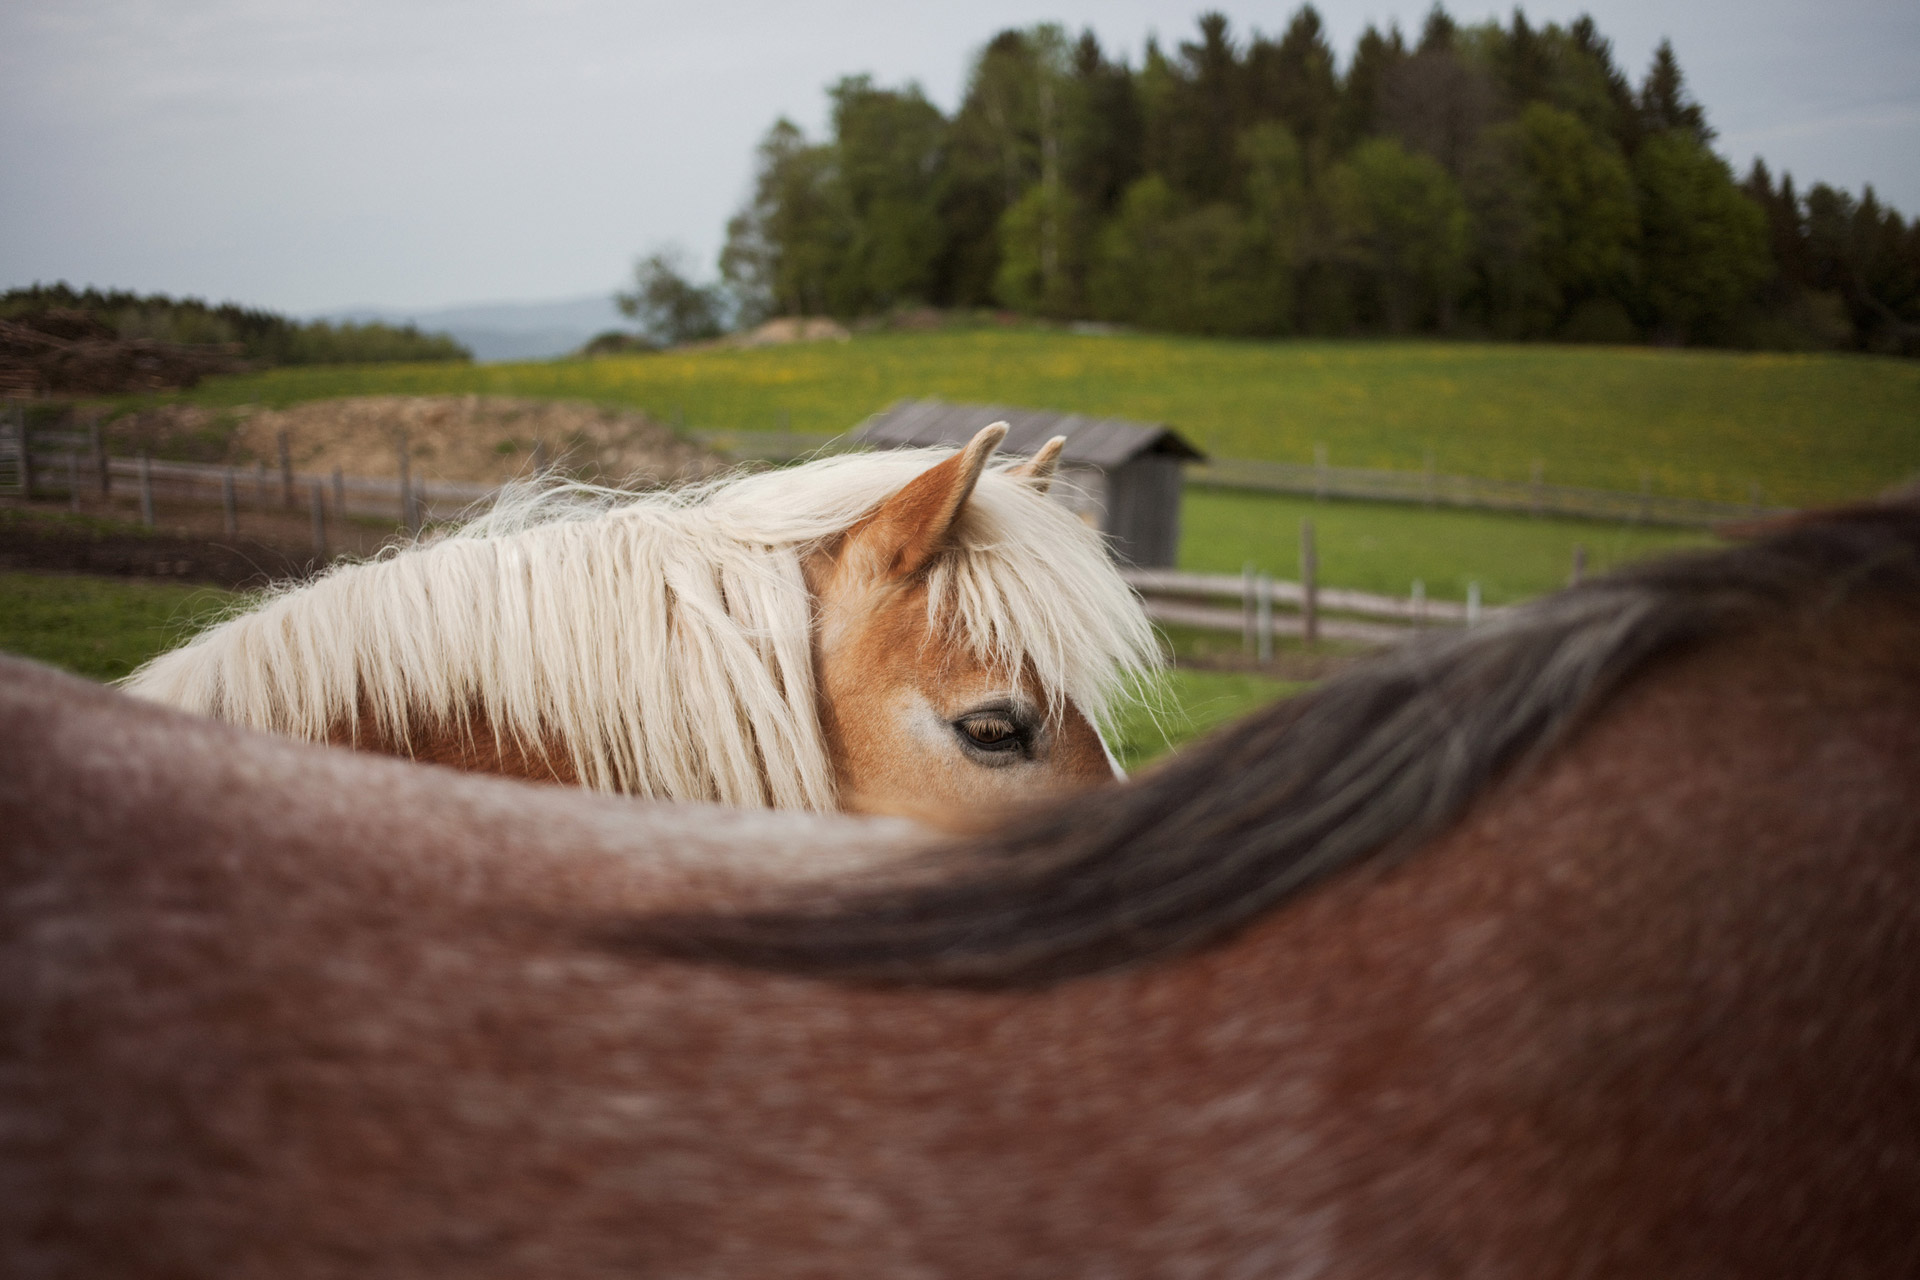 timo-stammberger-photography-fotografie-horses-cute-animals-nature-erdlingshof-mitgefuehl-vegan-compassion